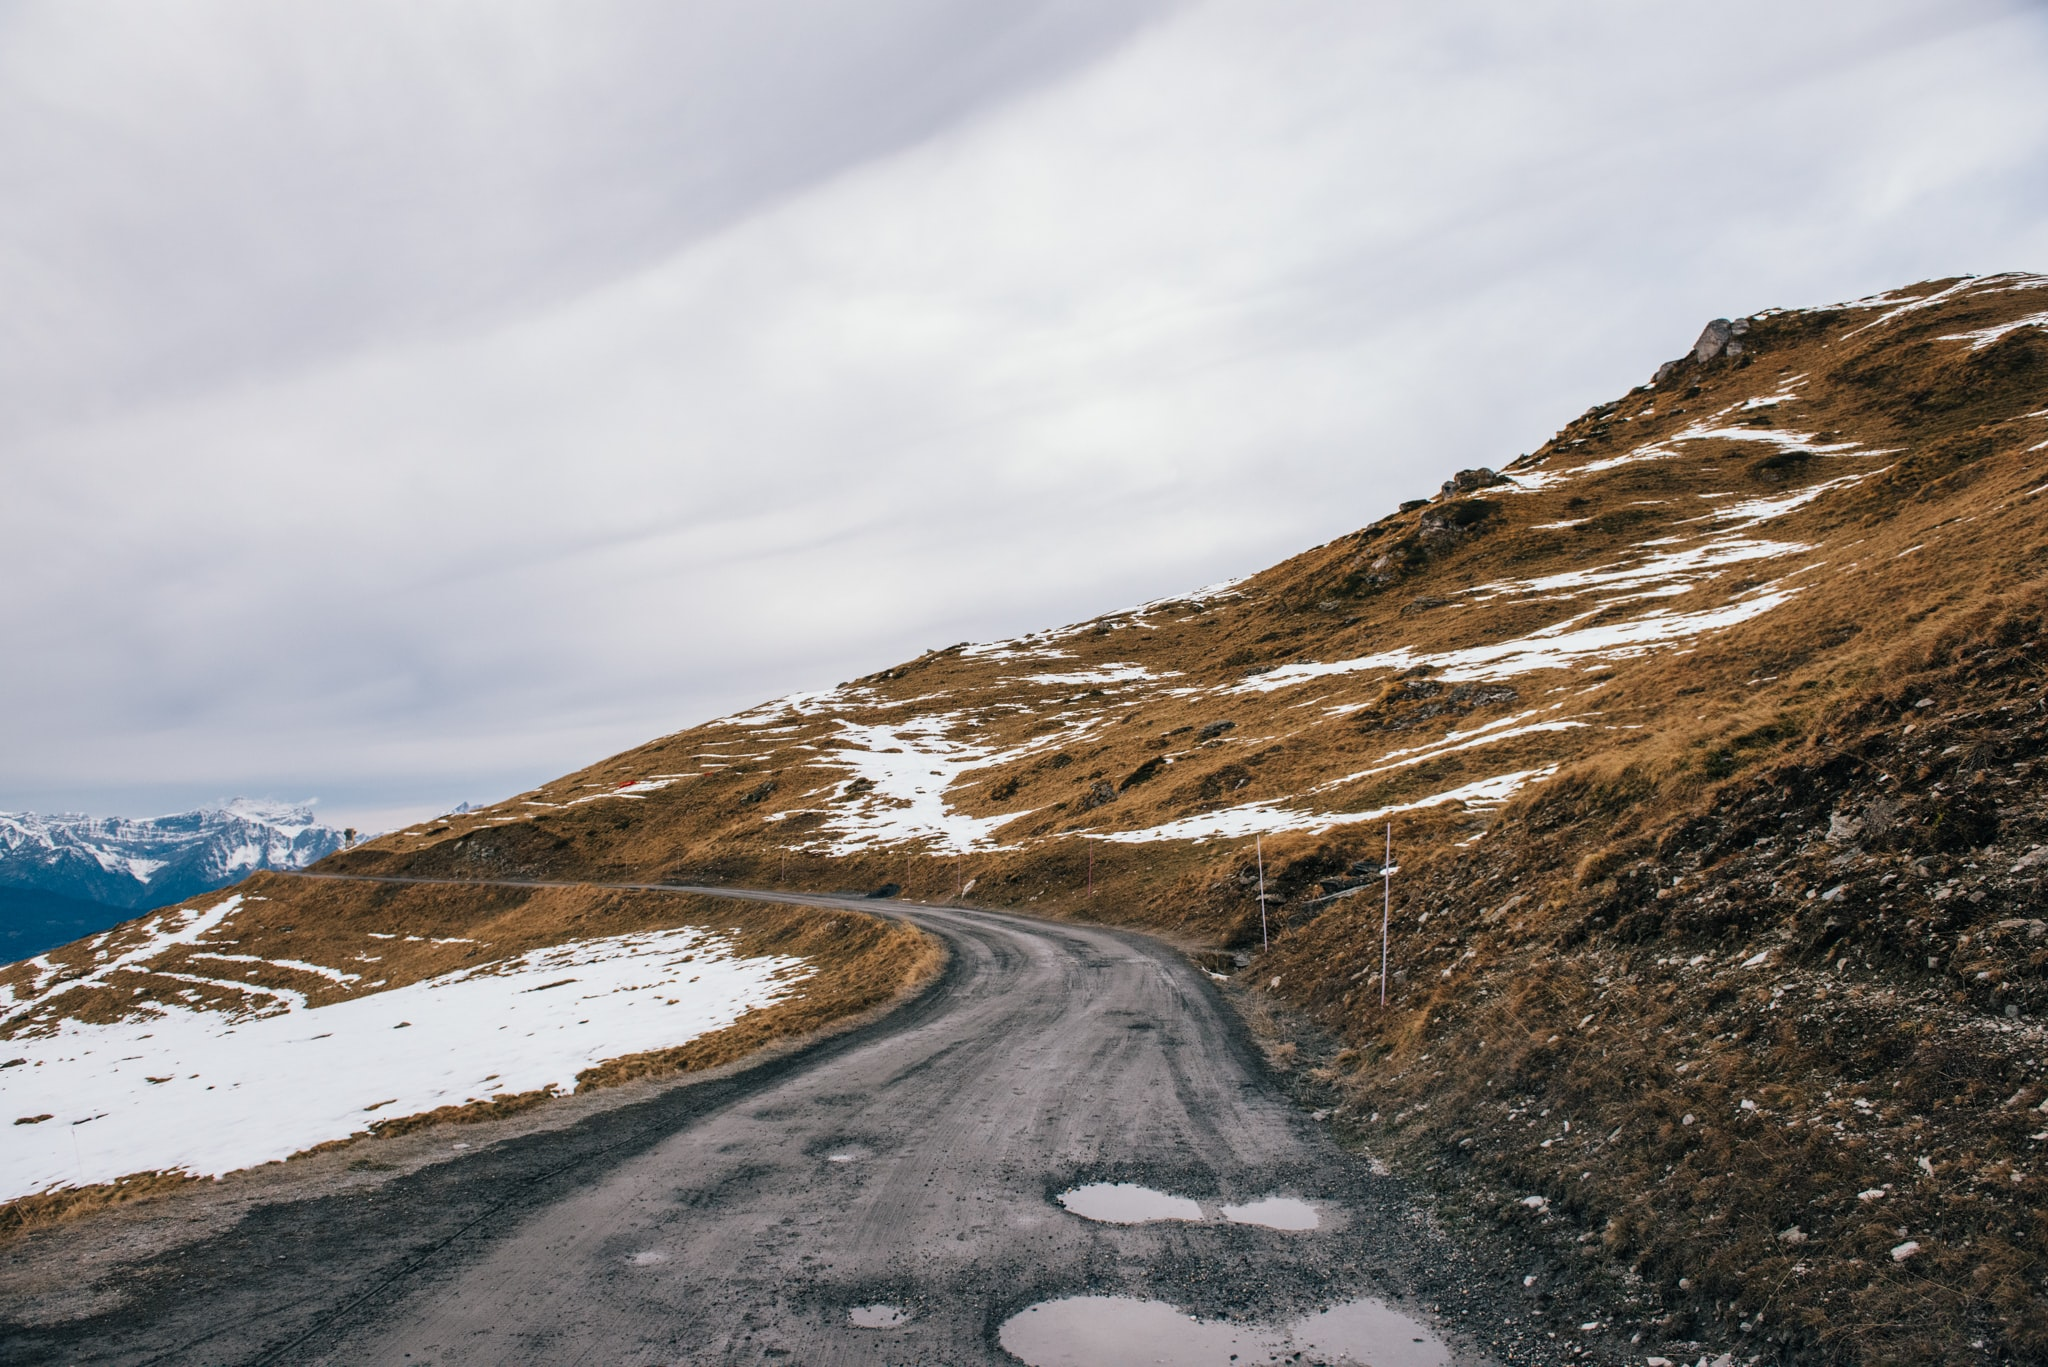 A rough mountain road curves around a wilderness with patches of snow